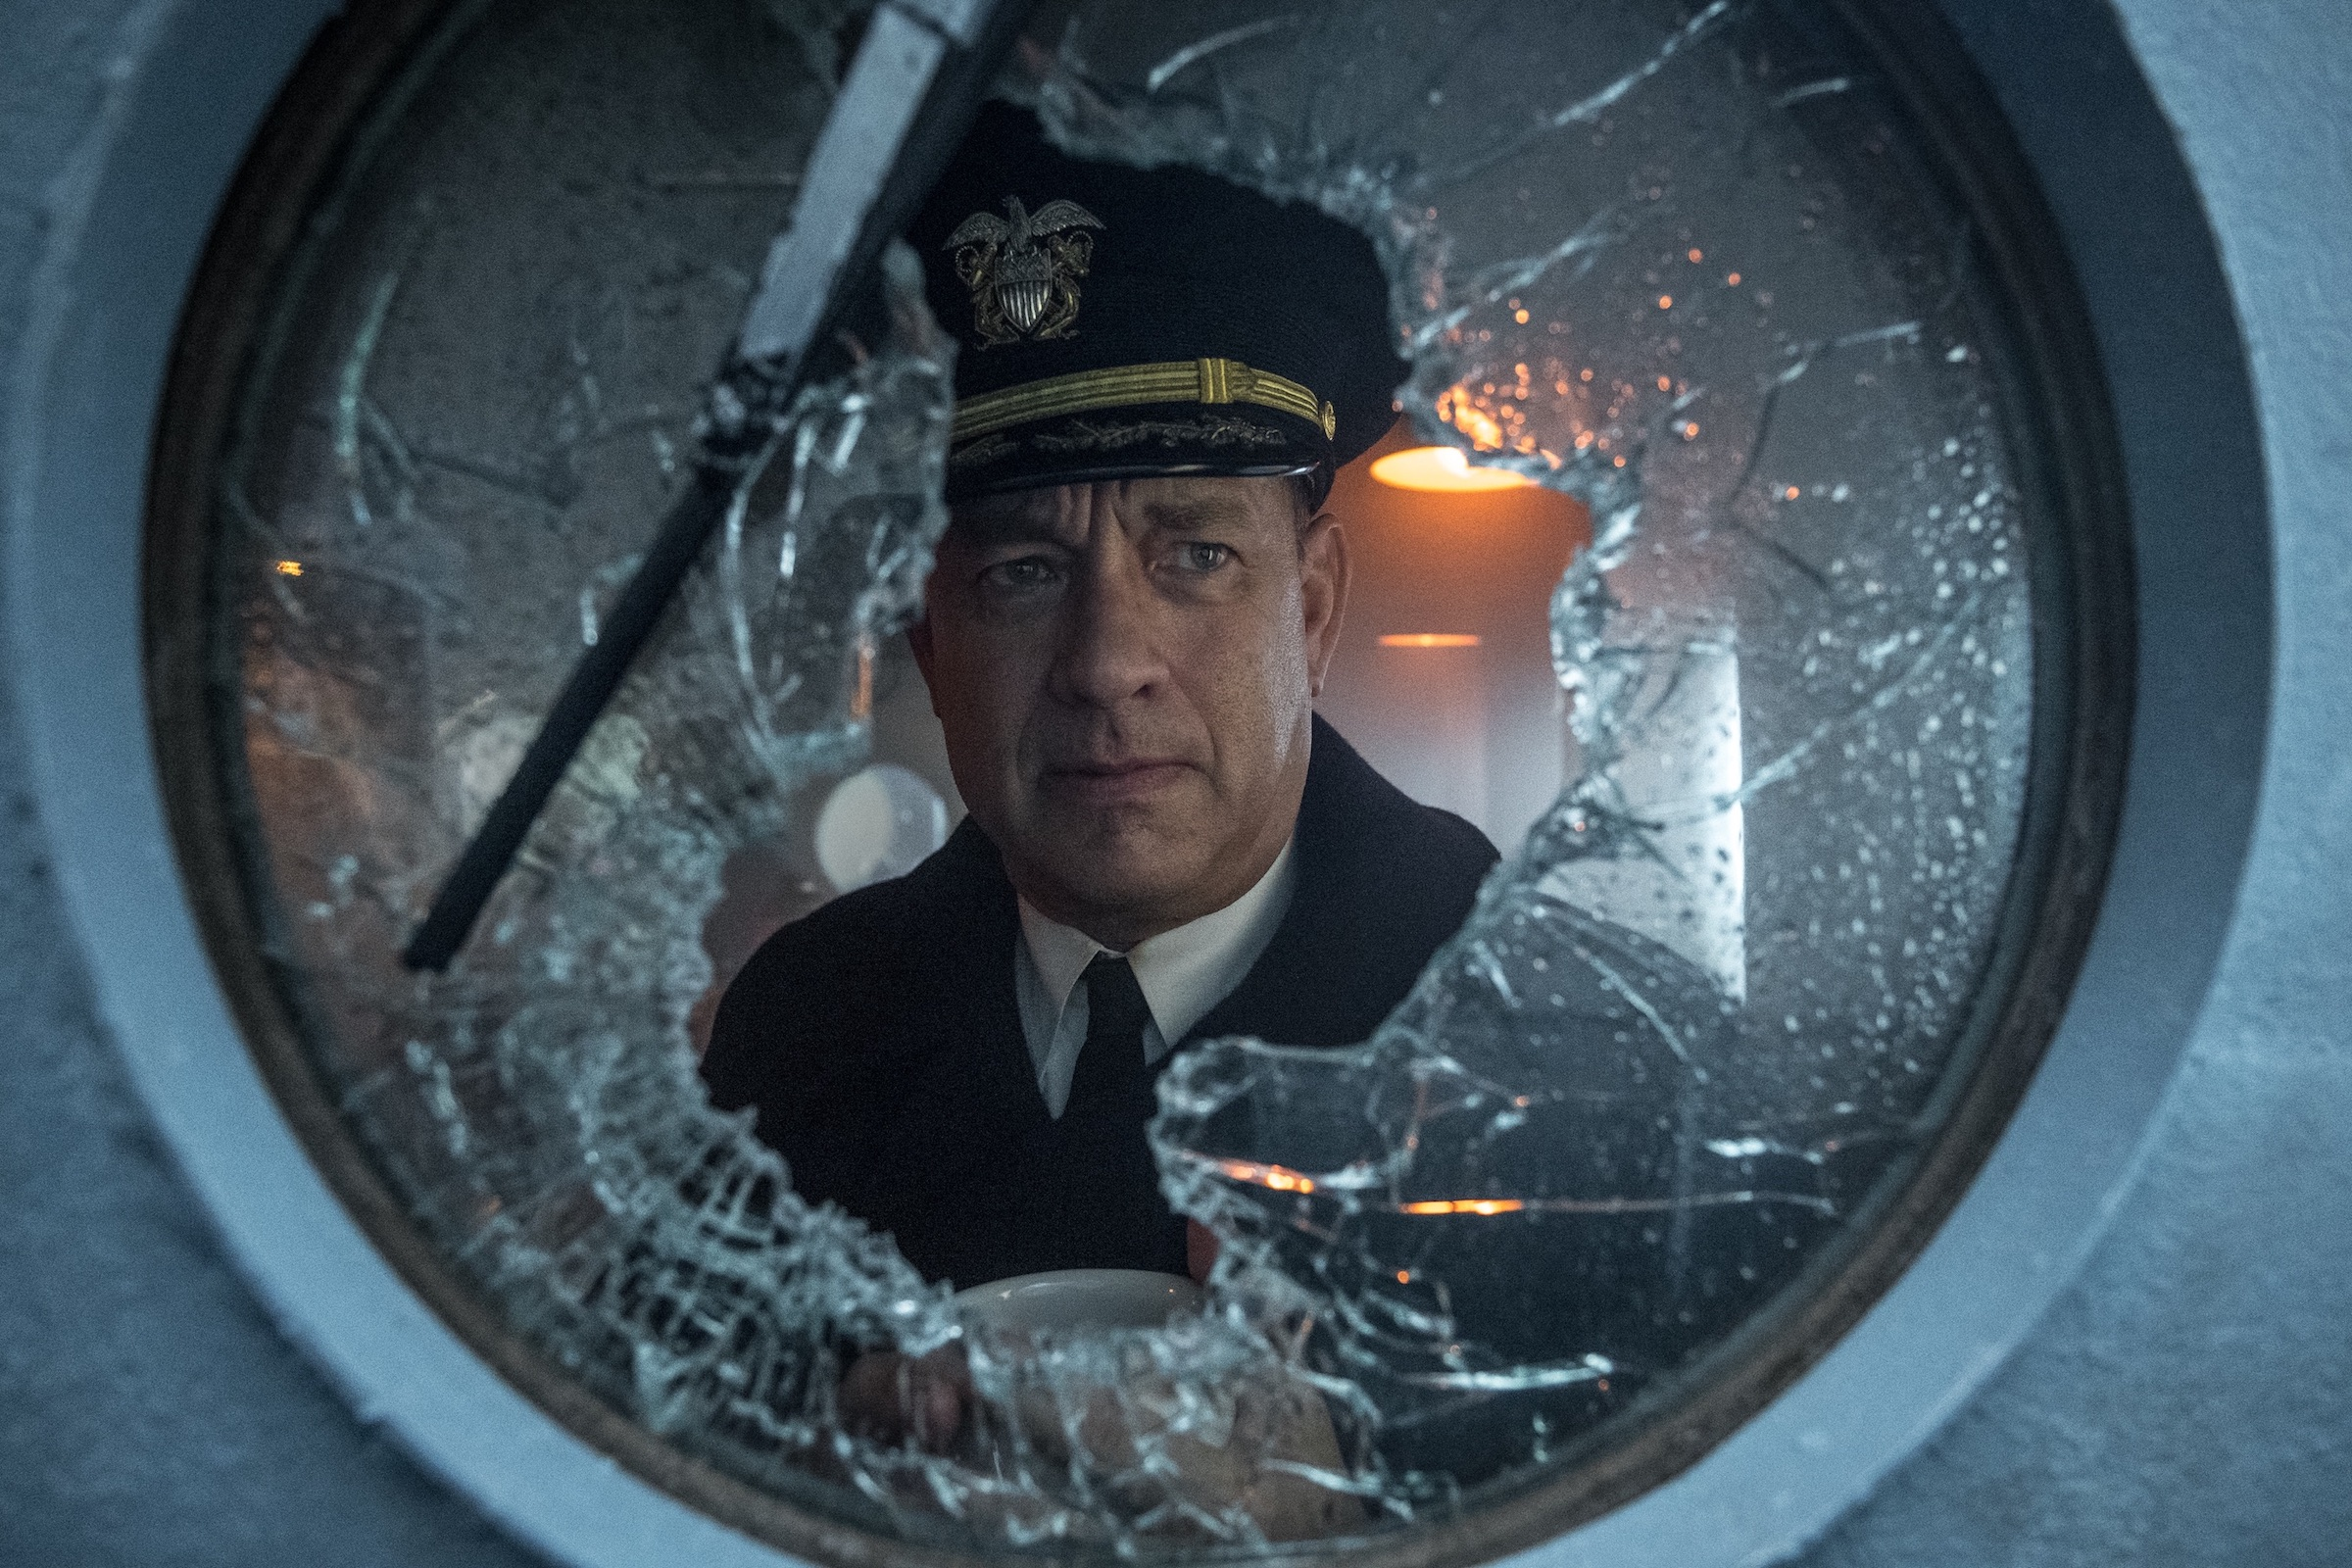 'Greyhound' Star Tom Hanks Baffled by People Who Don't Take COVID-19 Seriously